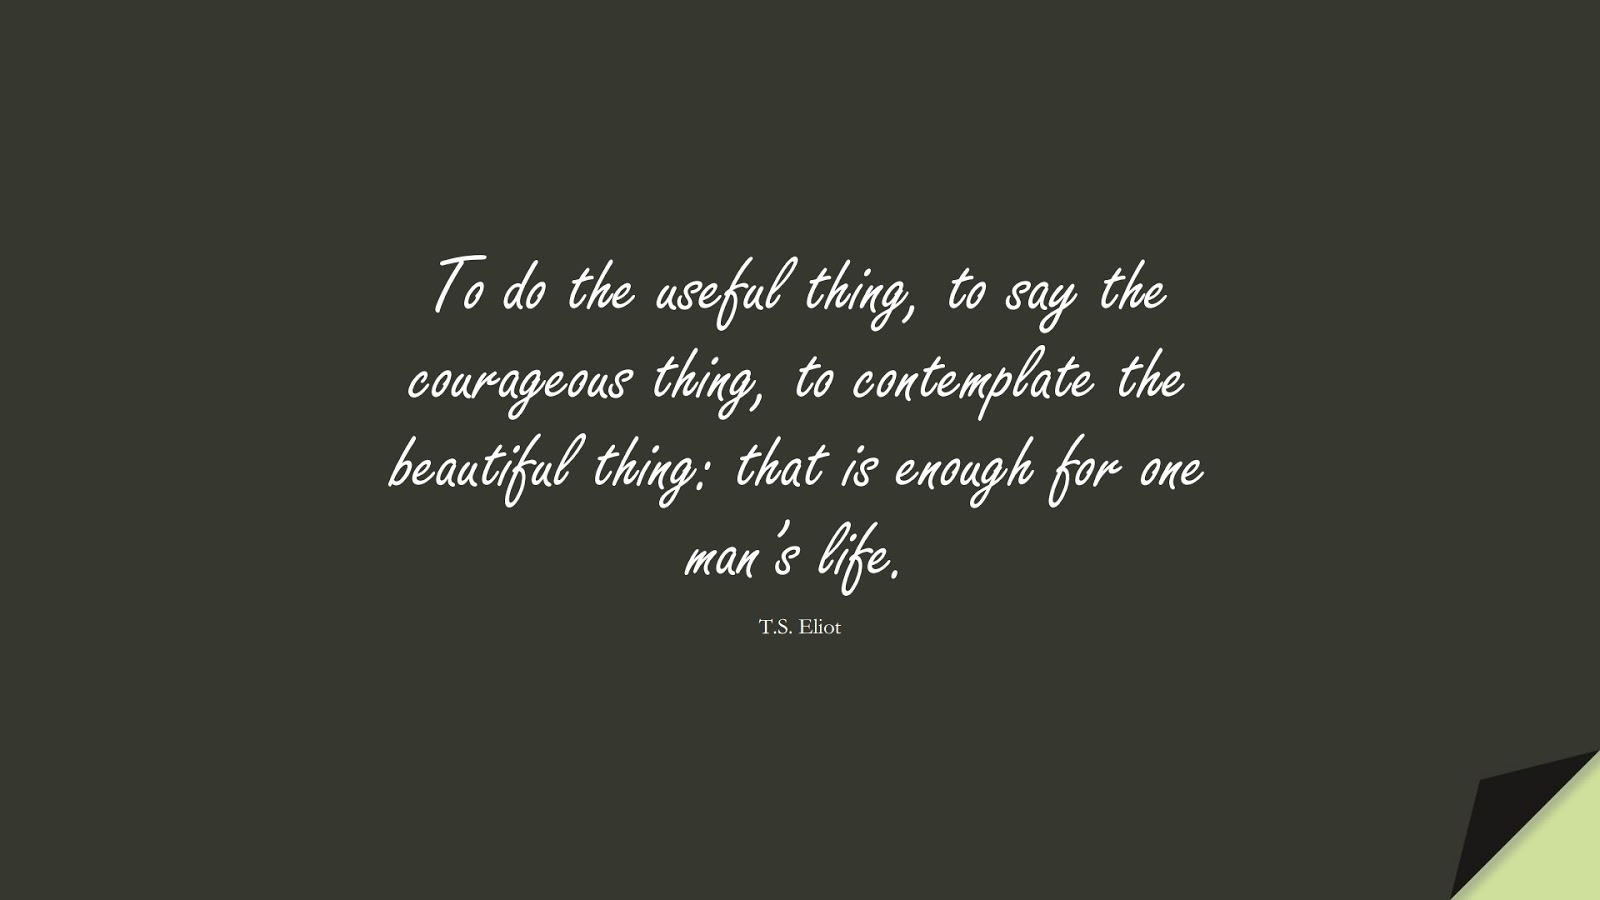 To do the useful thing, to say the courageous thing, to contemplate the beautiful thing: that is enough for one man's life. (T.S. Eliot);  #BestQuotes